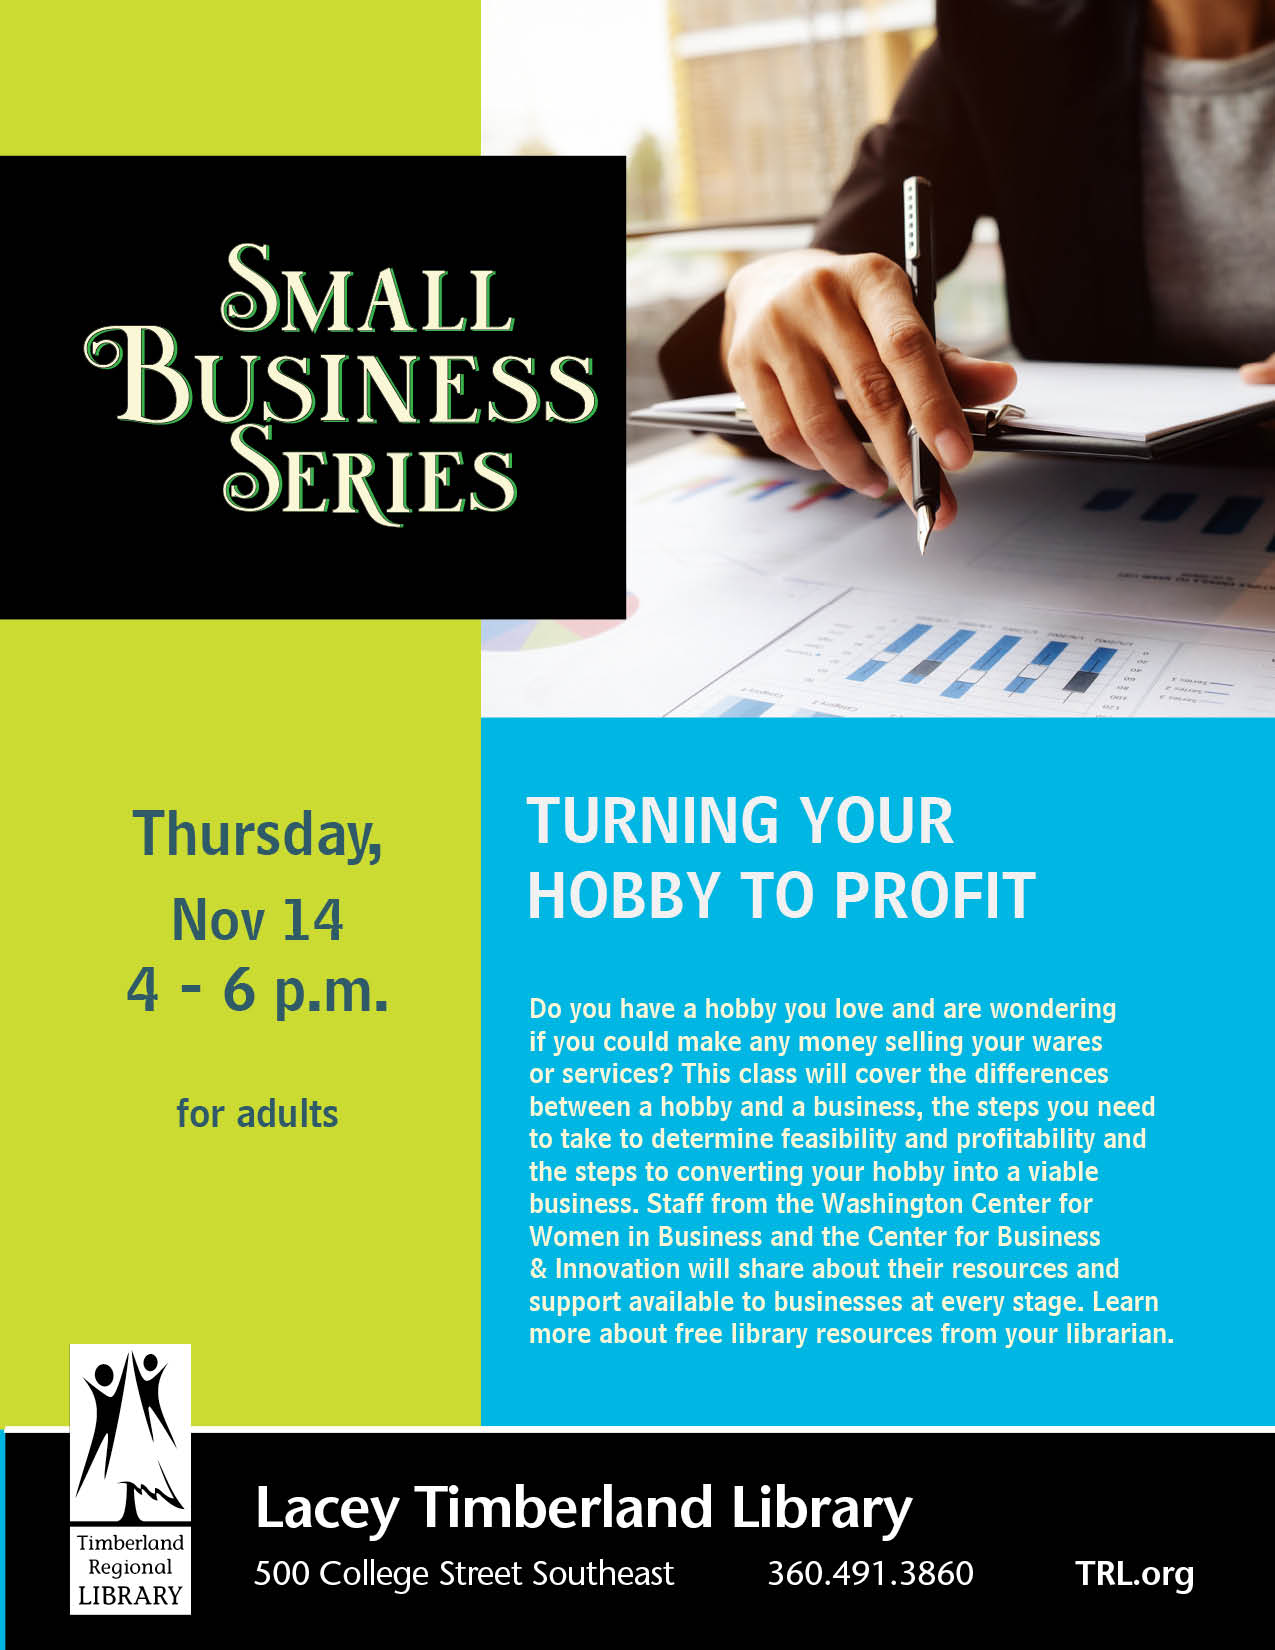 Small Business Series: Turning Your Hobby to Profit